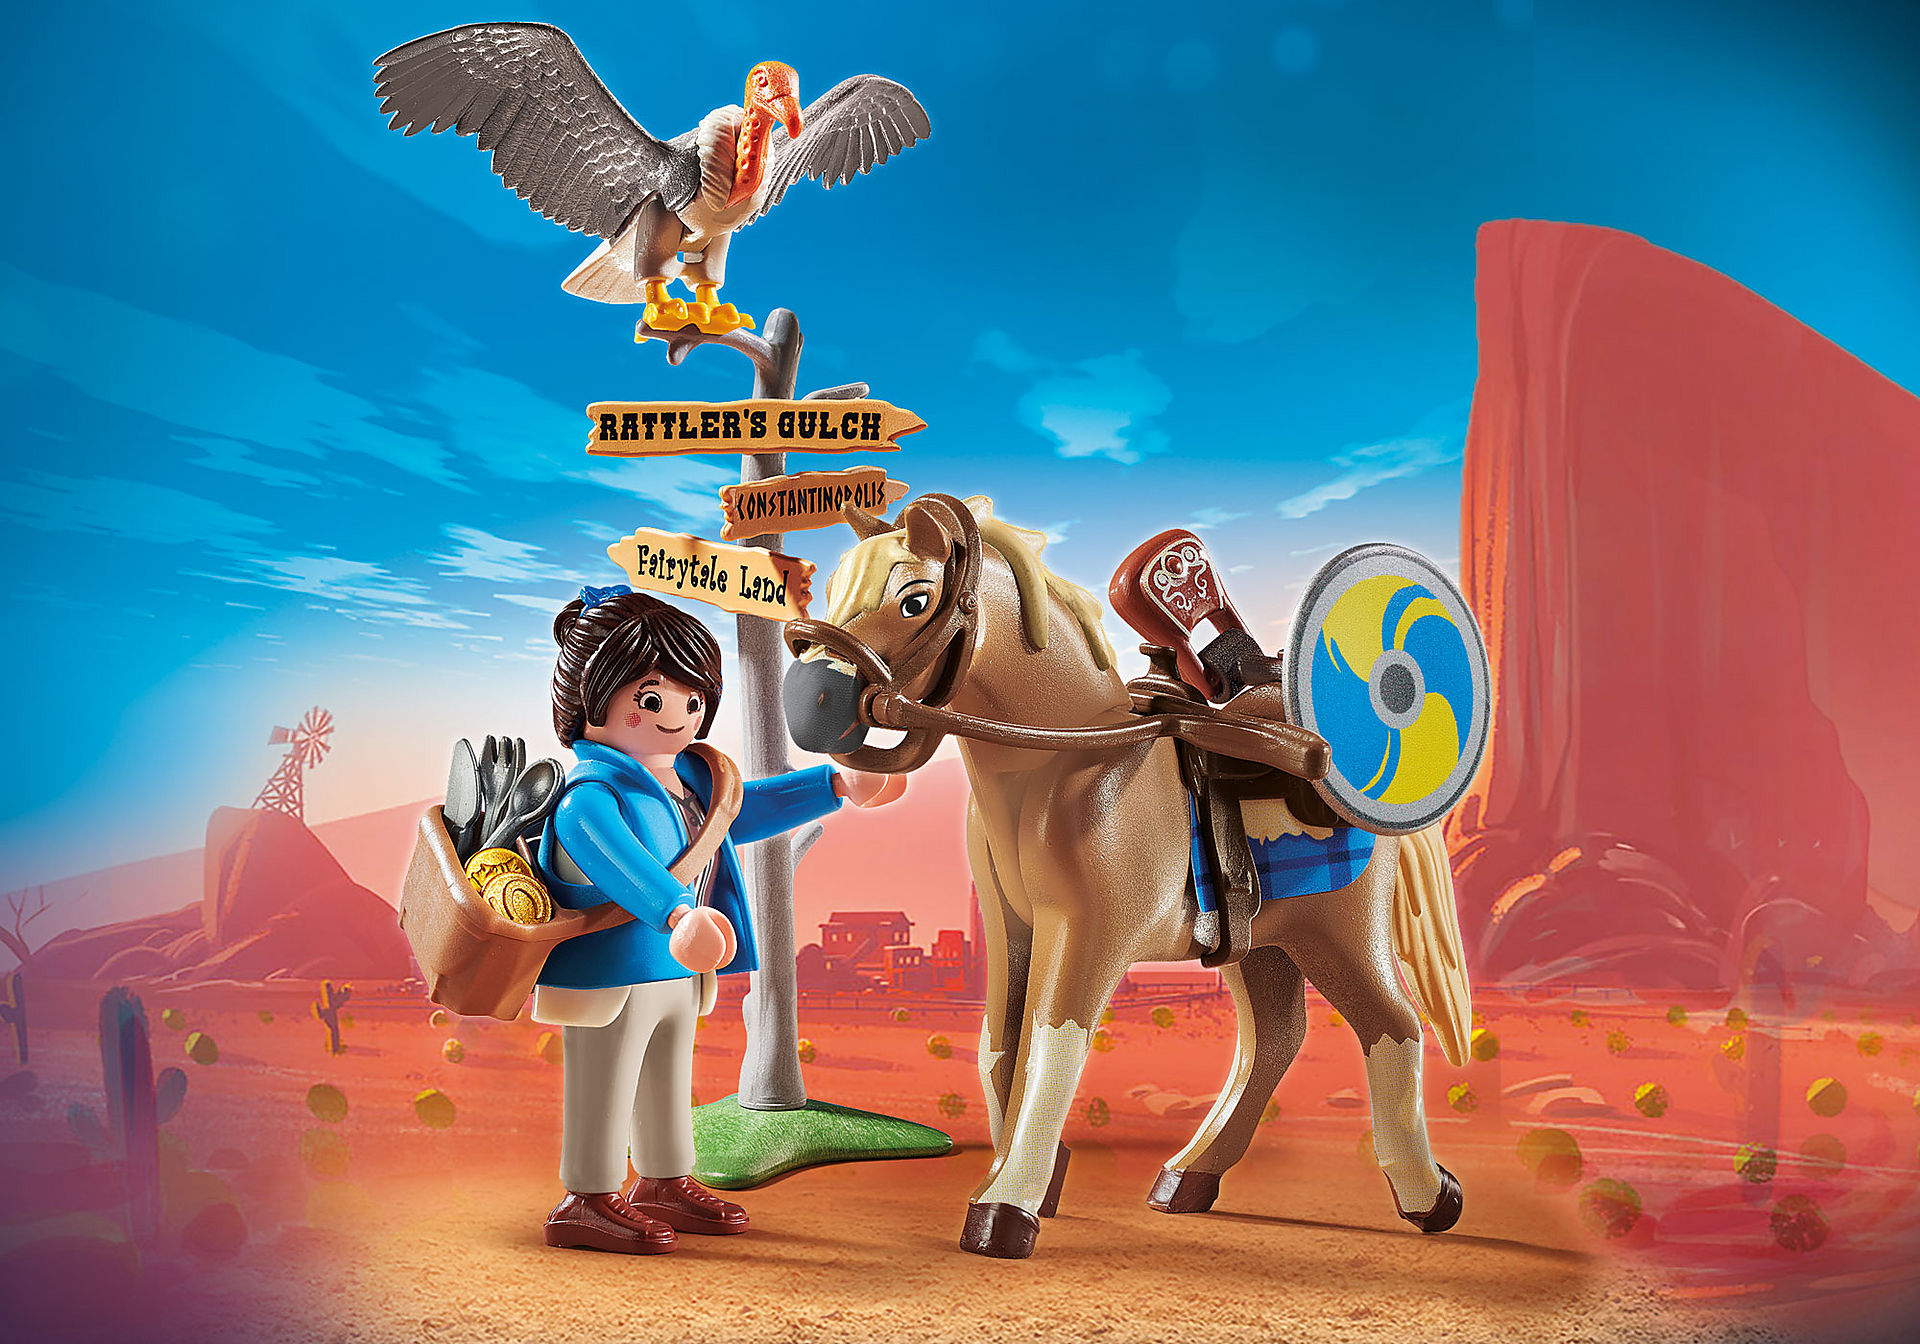 http://media.playmobil.com/i/playmobil/70072_product_detail/PLAYMOBIL: THE MOVIE Marla com Cavalo